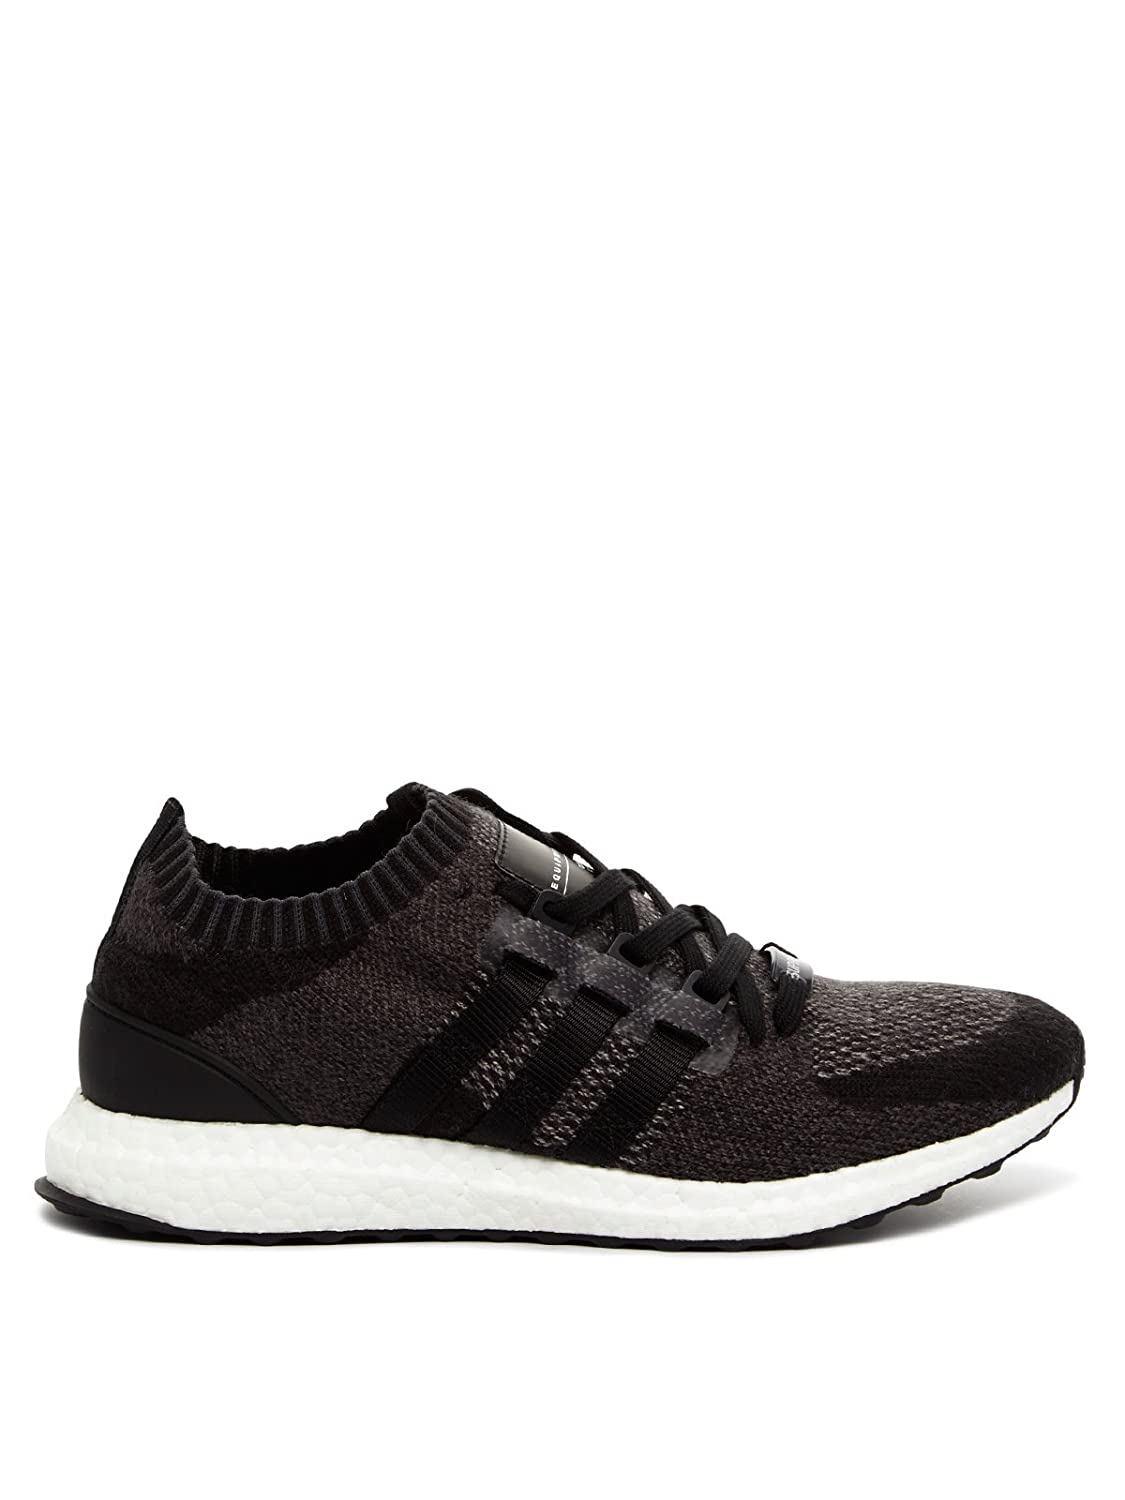 new styles 4776f 5c799 adidas Originals Equipment Support Ultra Primeknit Boost Men's Sneaker  Black BB1241